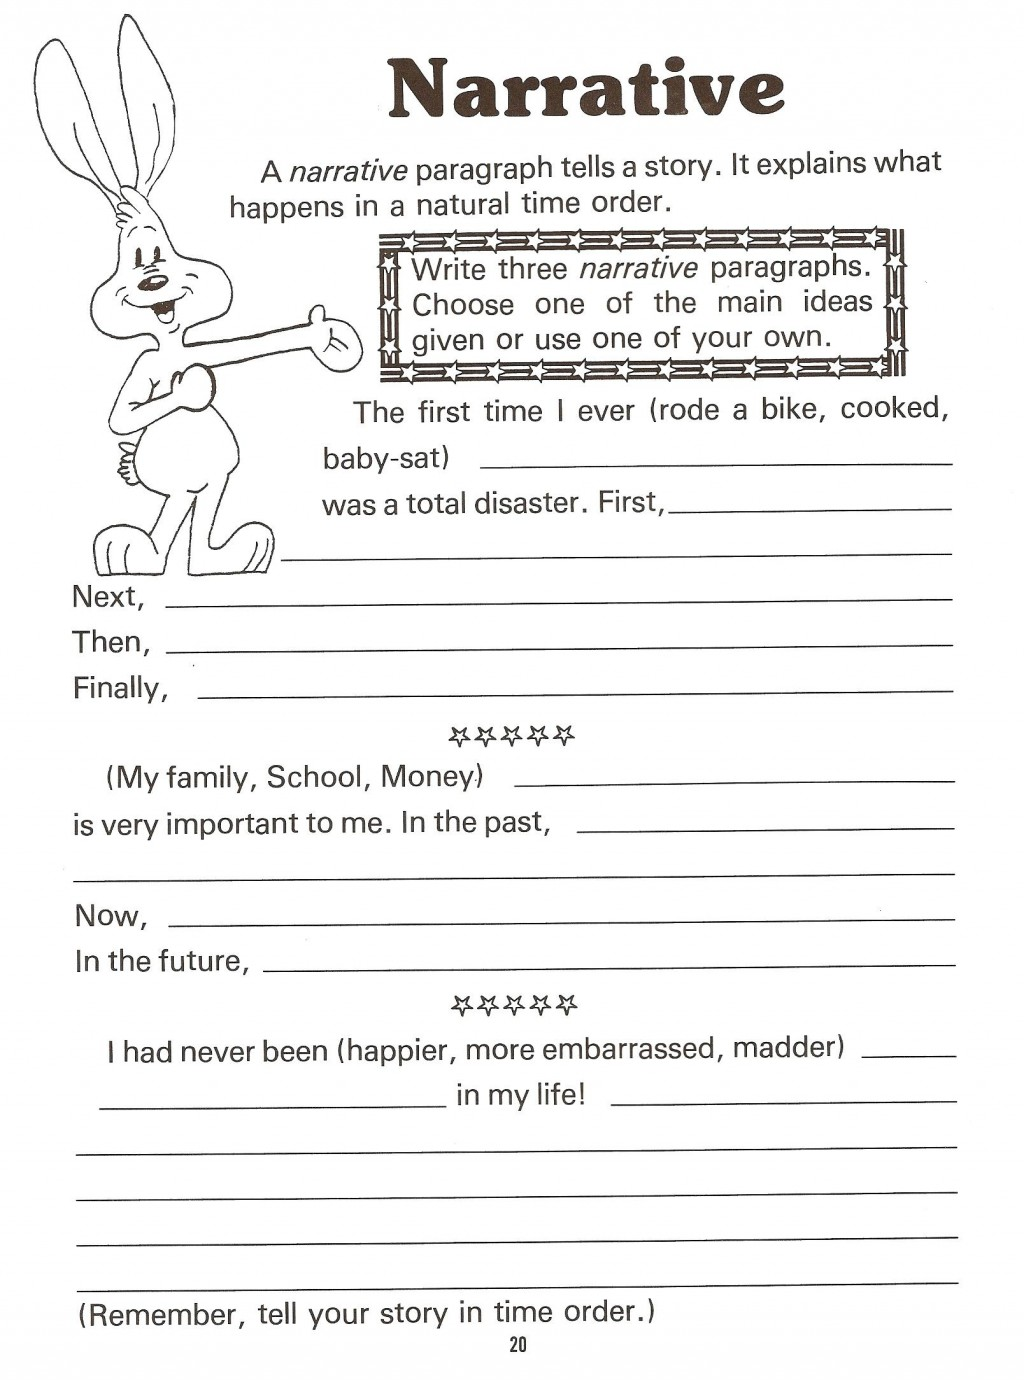 010 Essay Exampletive Topics For College Students Resume Writing Services In Credit Cart Terminal Paper Literacy Unforgettable Narrative Prompts Ideas Personal Large